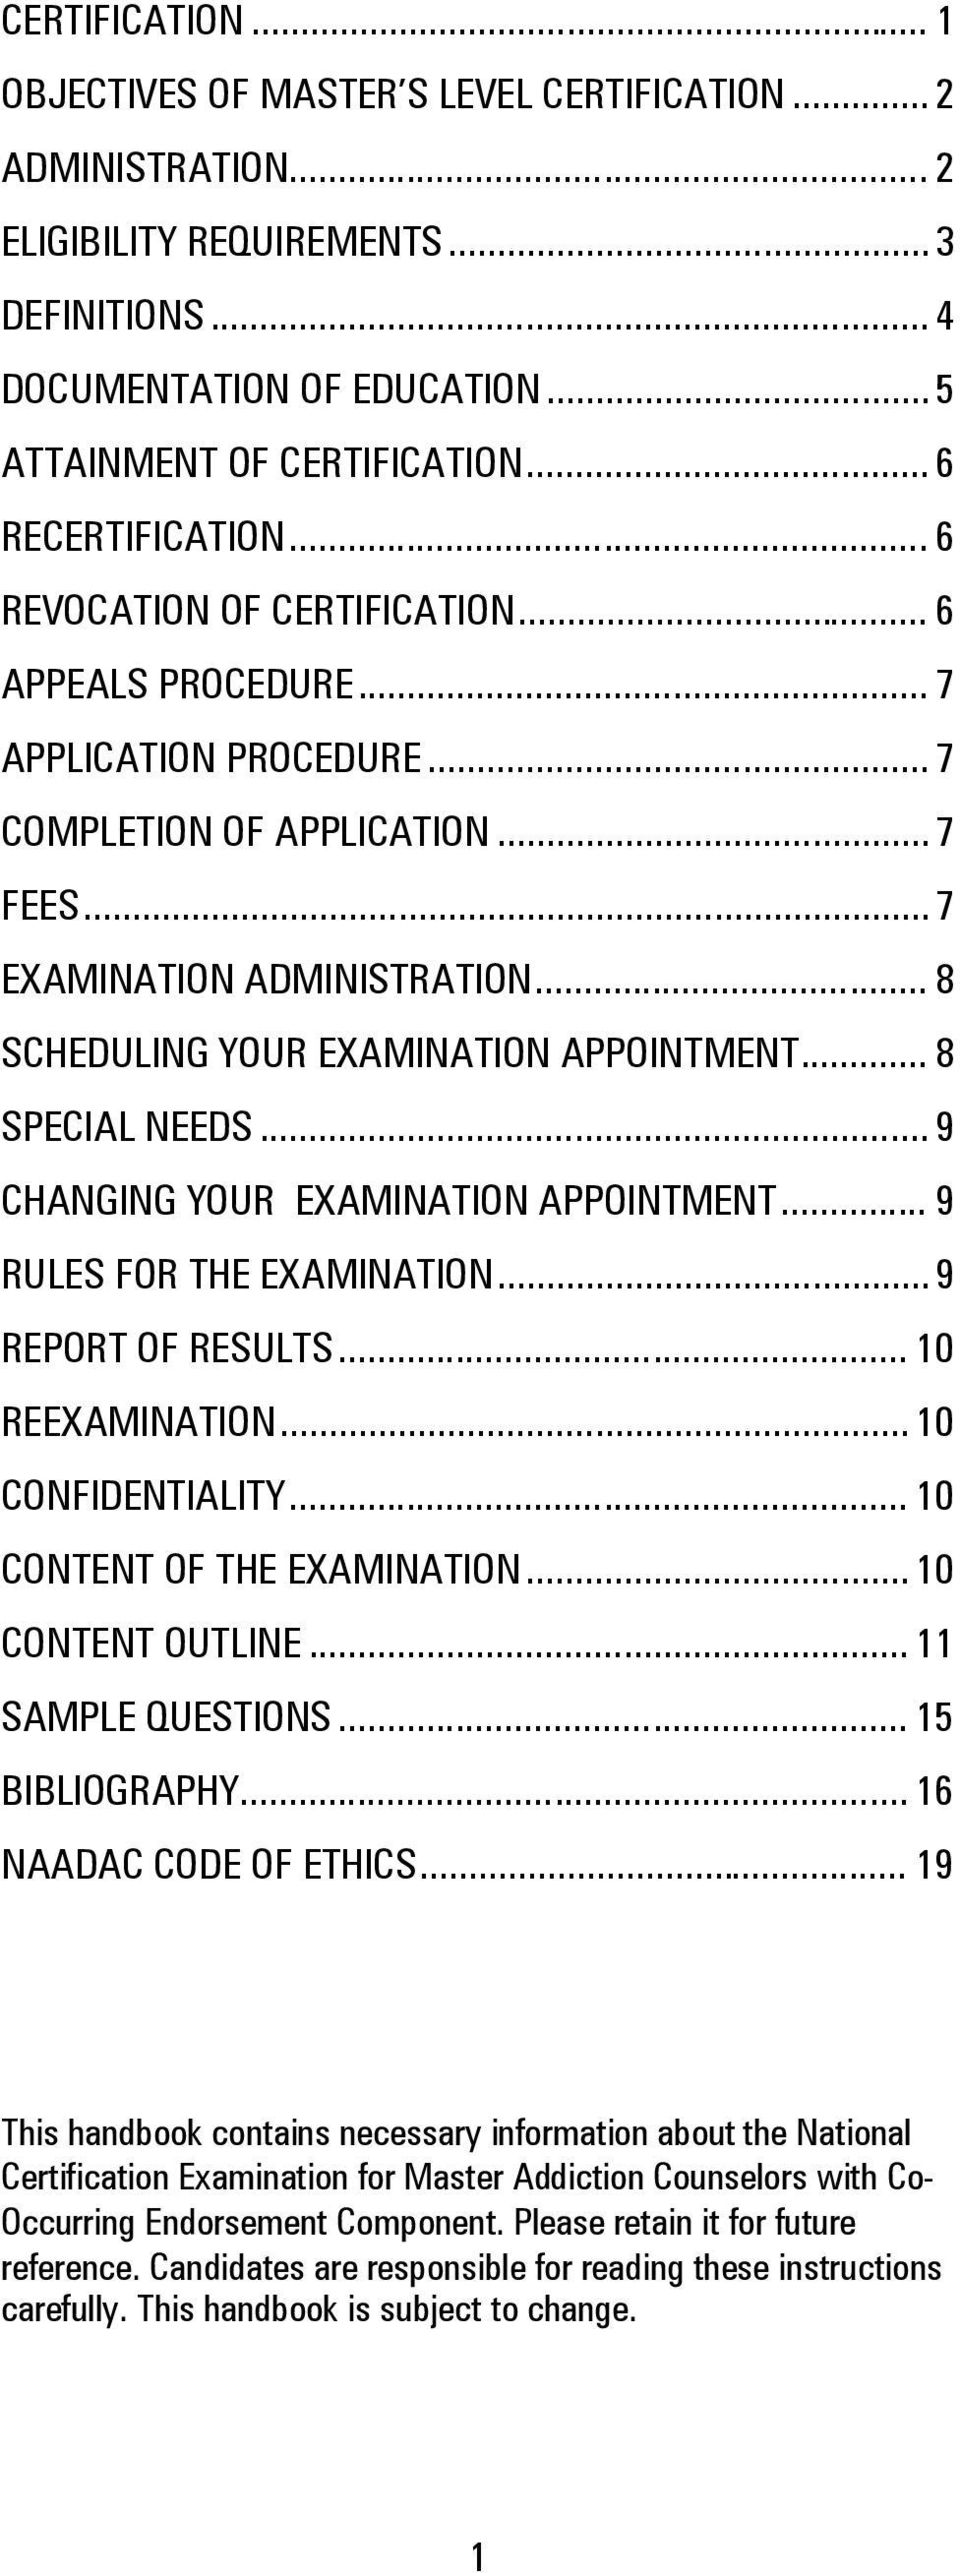 .. 8 SCHEDULING YOUR EXAMINATION APPOINTMENT... 8 SPECIAL NEEDS... 9 CHANGING YOUR EXAMINATION APPOINTMENT... 9 RULES FOR THE EXAMINATION... 9 REPORT OF RESULTS... 10 REEXAMINATION.